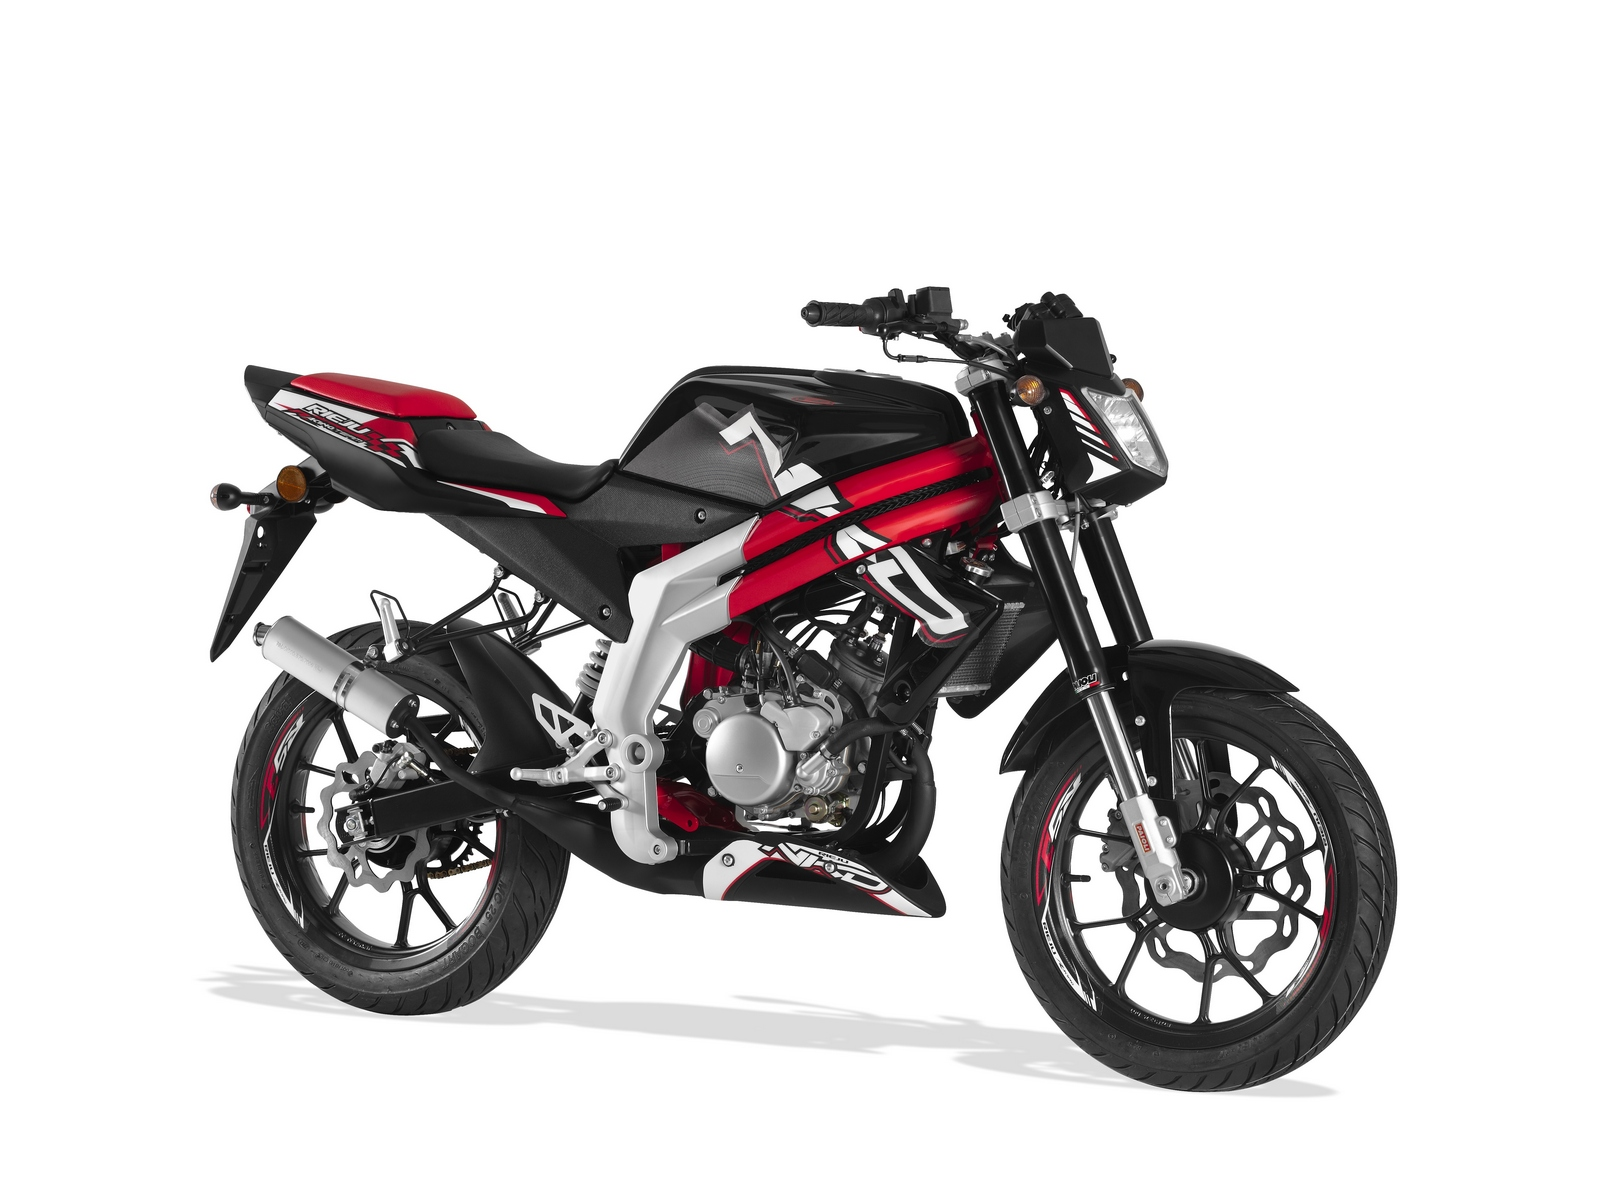 2013 rieju rs3 50cc nkd naked small displacement aggression autoevolution. Black Bedroom Furniture Sets. Home Design Ideas